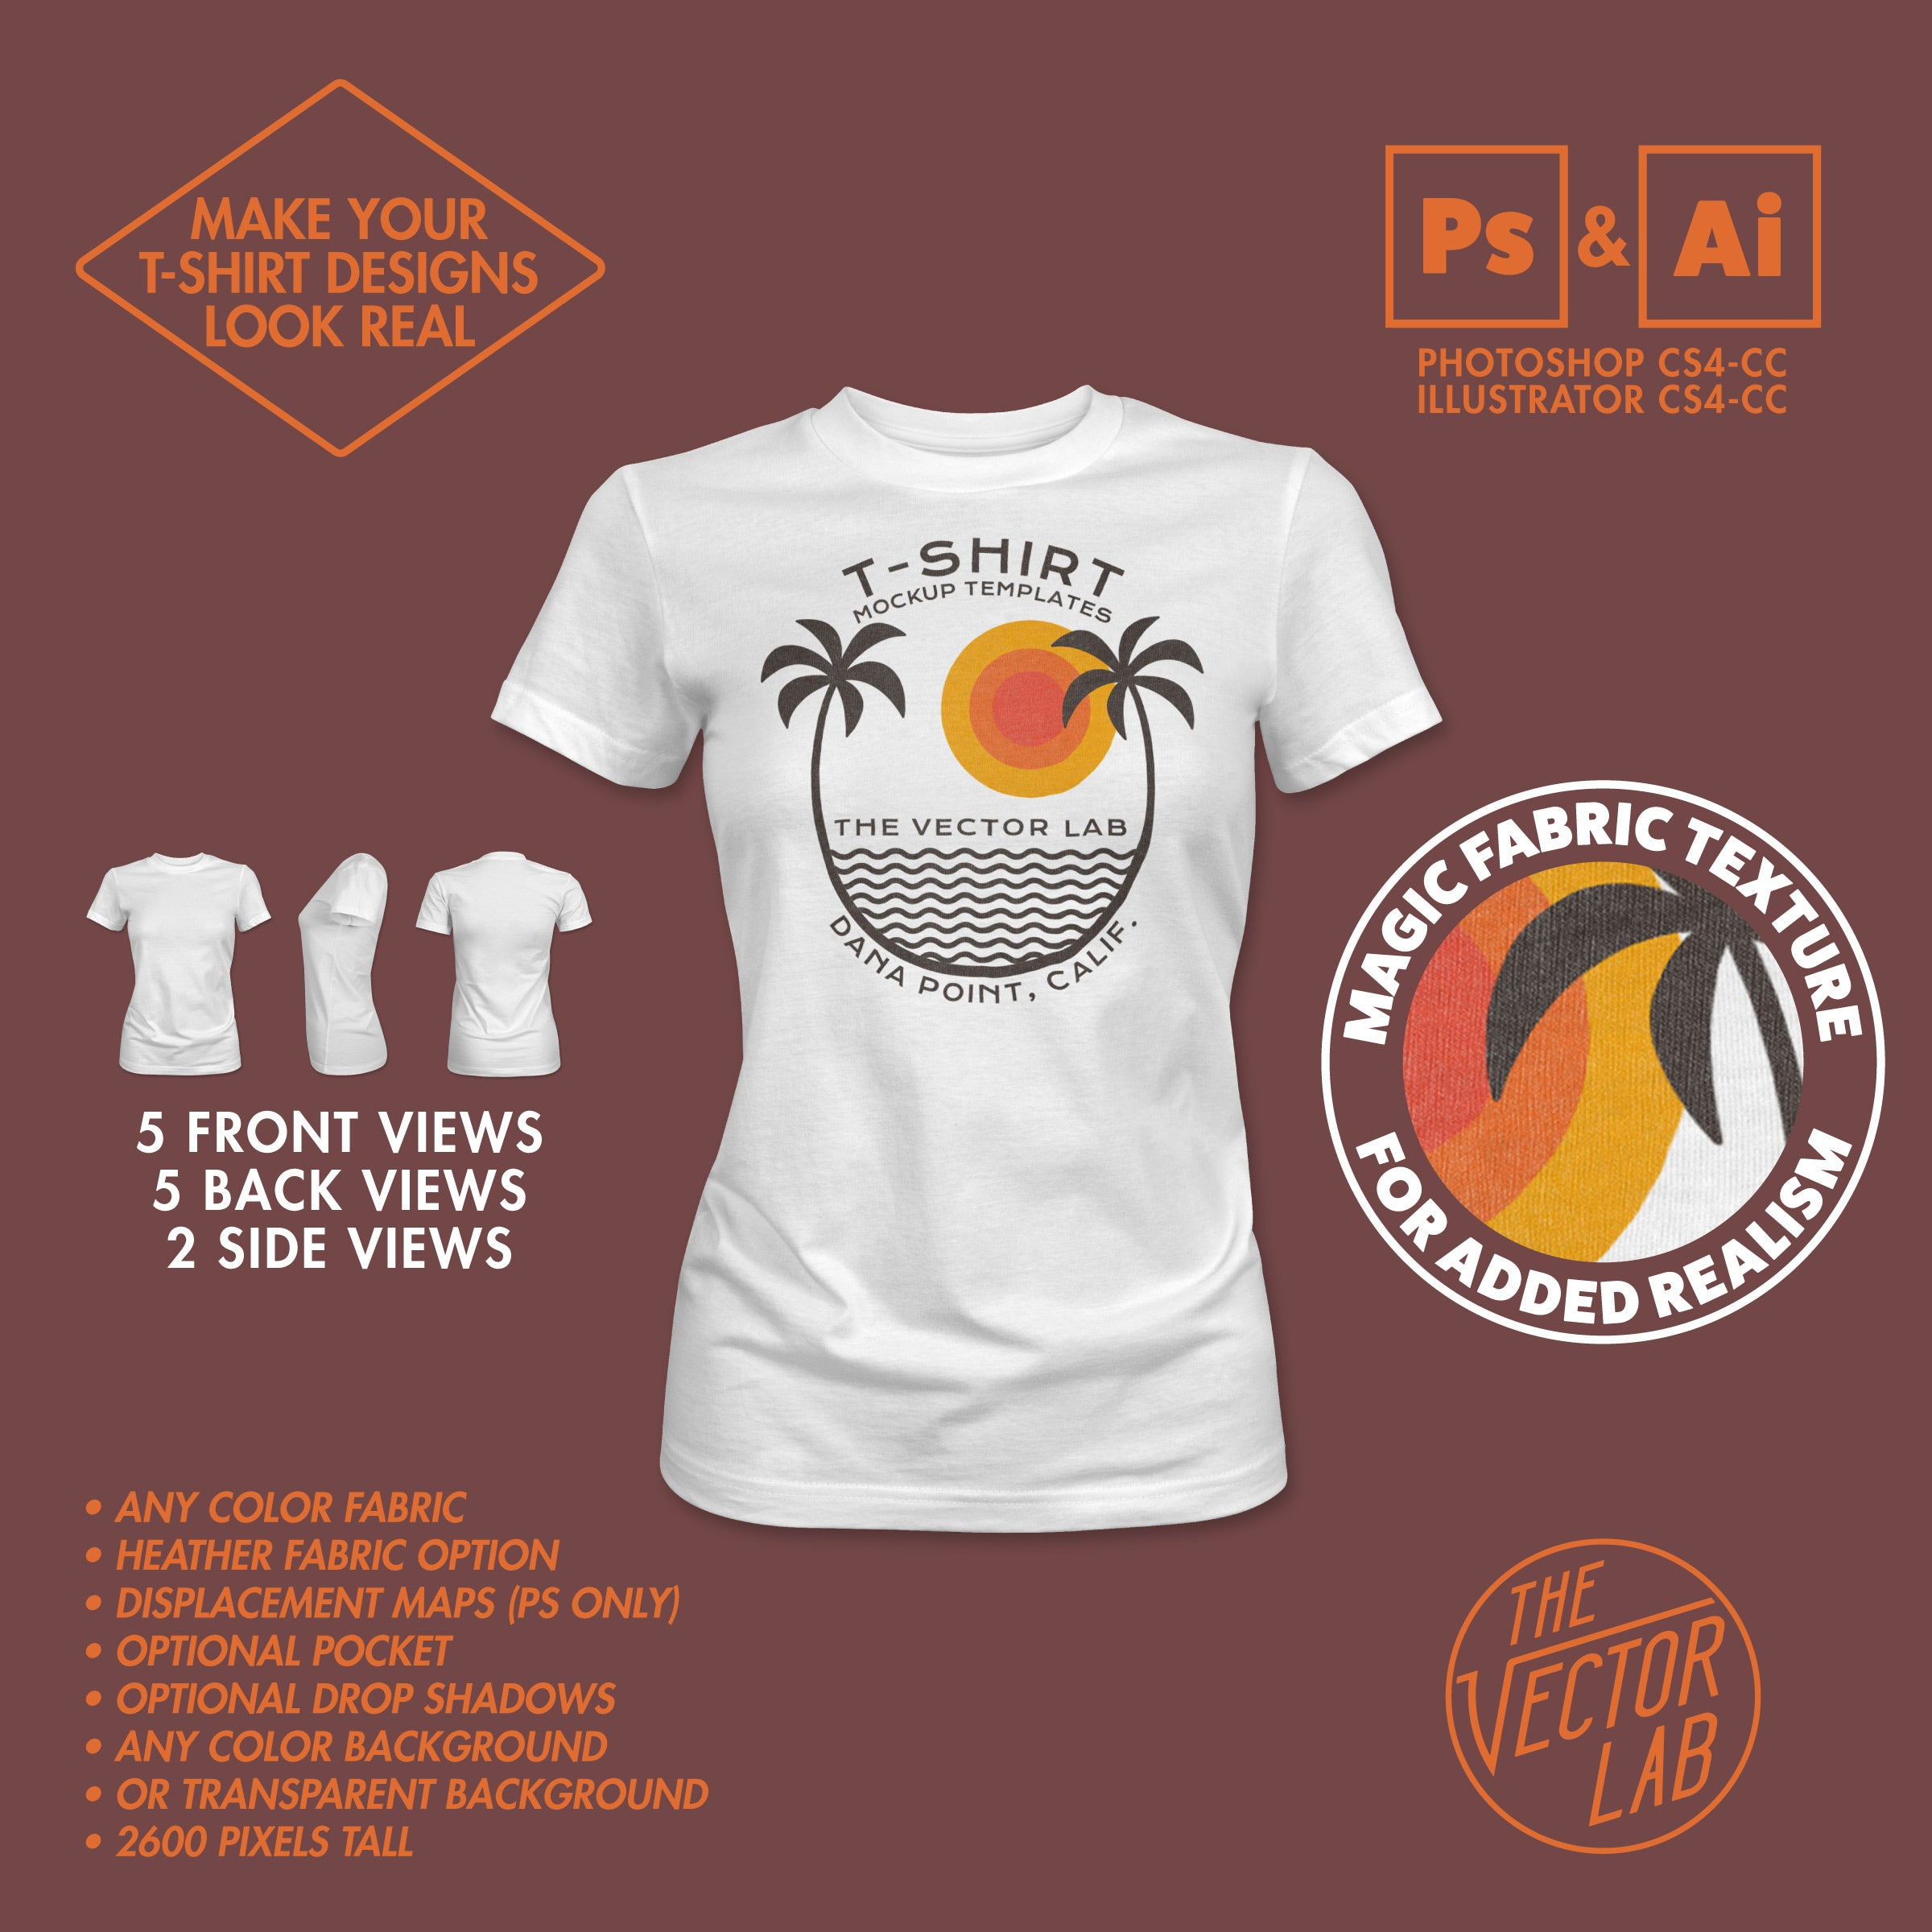 424e68aa ... Women's T-Shirt Mockup Templates for Photoshop and Illustrator ...